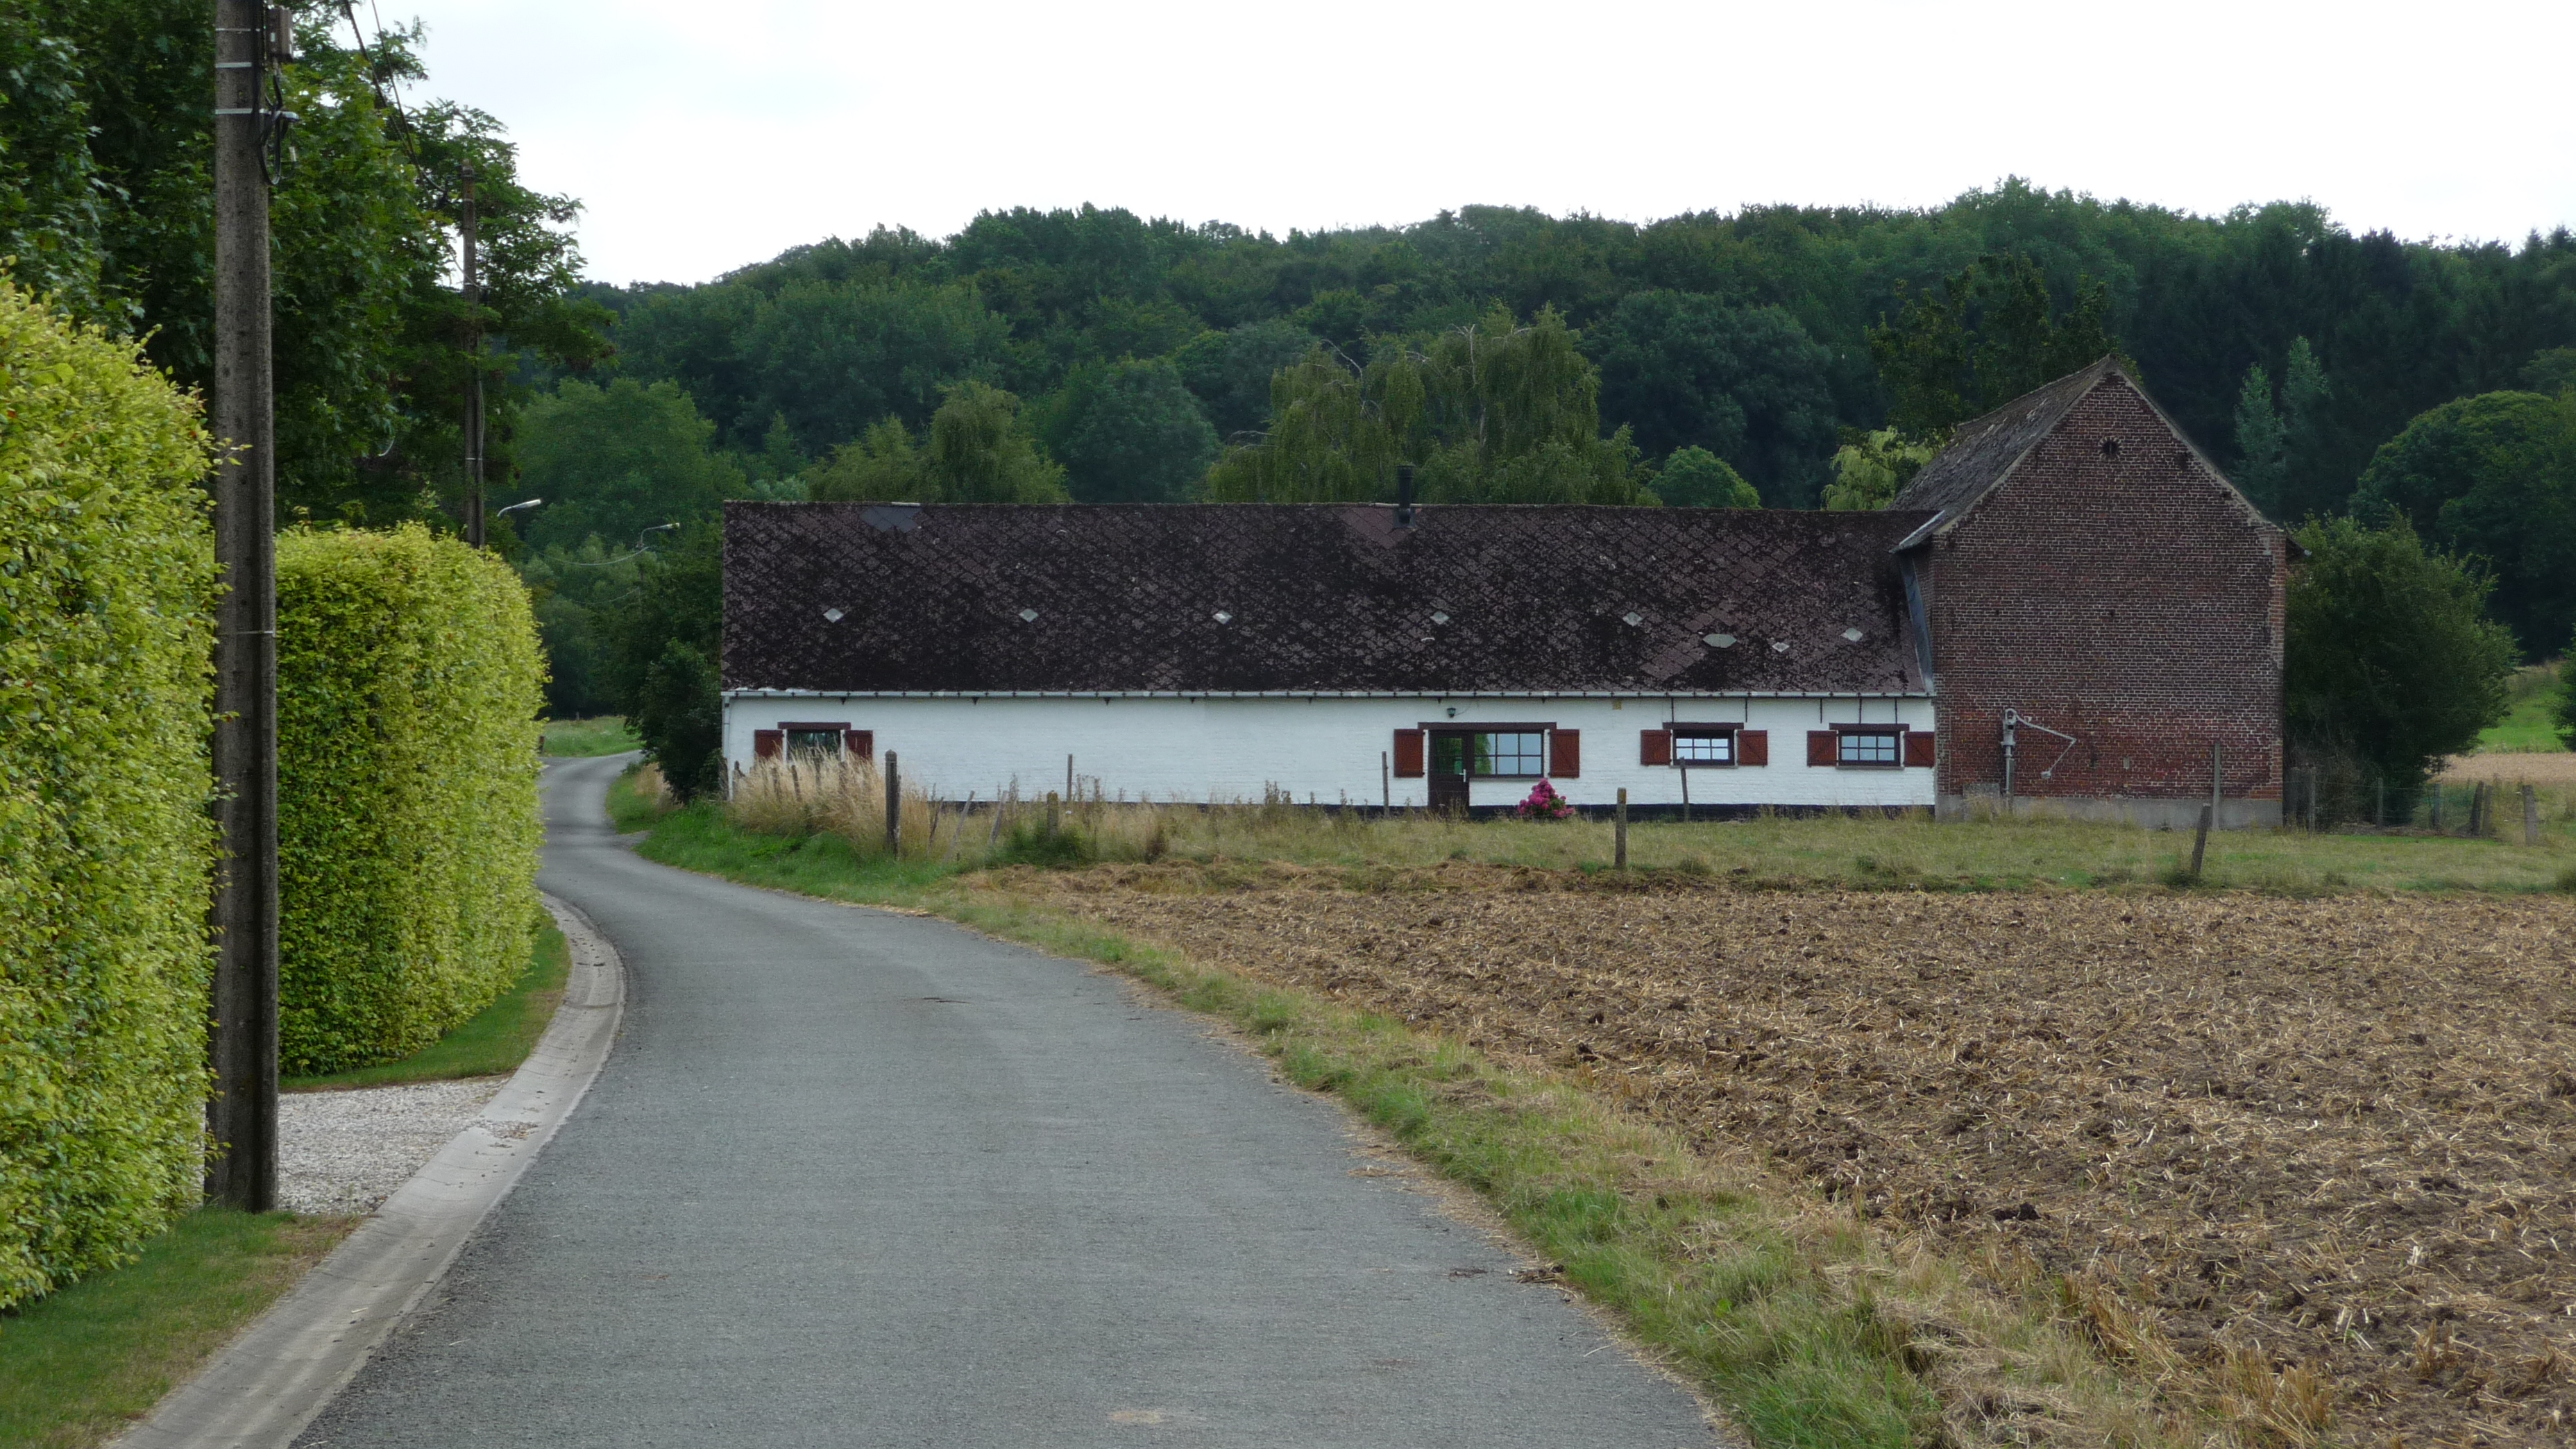 Walking around Frasnes-les-Anvaing